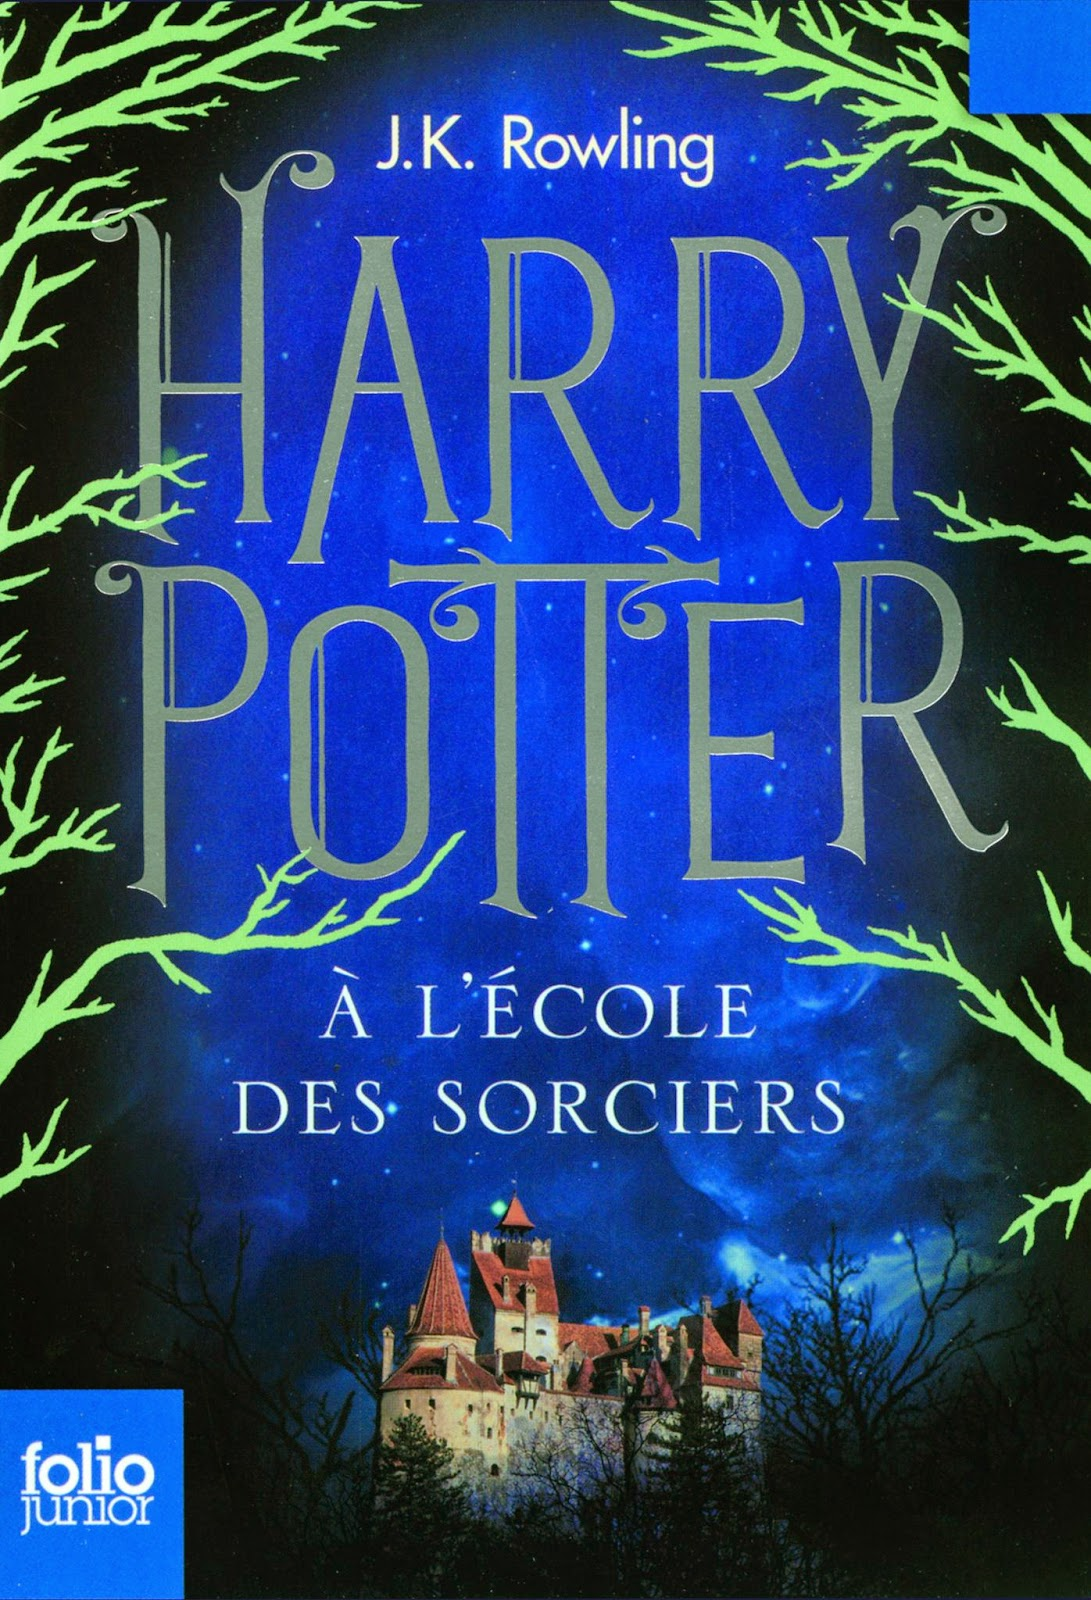 http://honey-b-books.blogspot.fr/2015/04/a-lecole-des-sorciers-t1-harry-potter.html